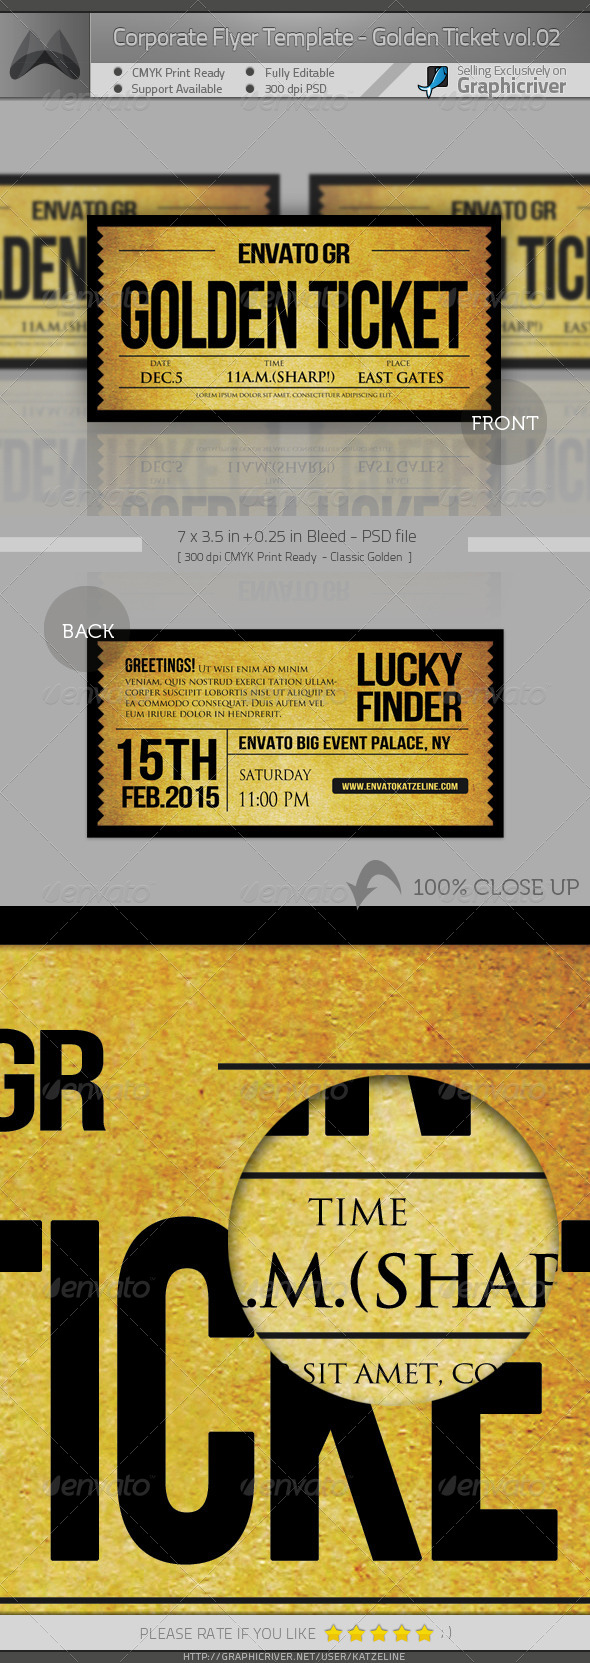 Corporate Invitation - Golden Ticket II - Invitations Cards & Invites